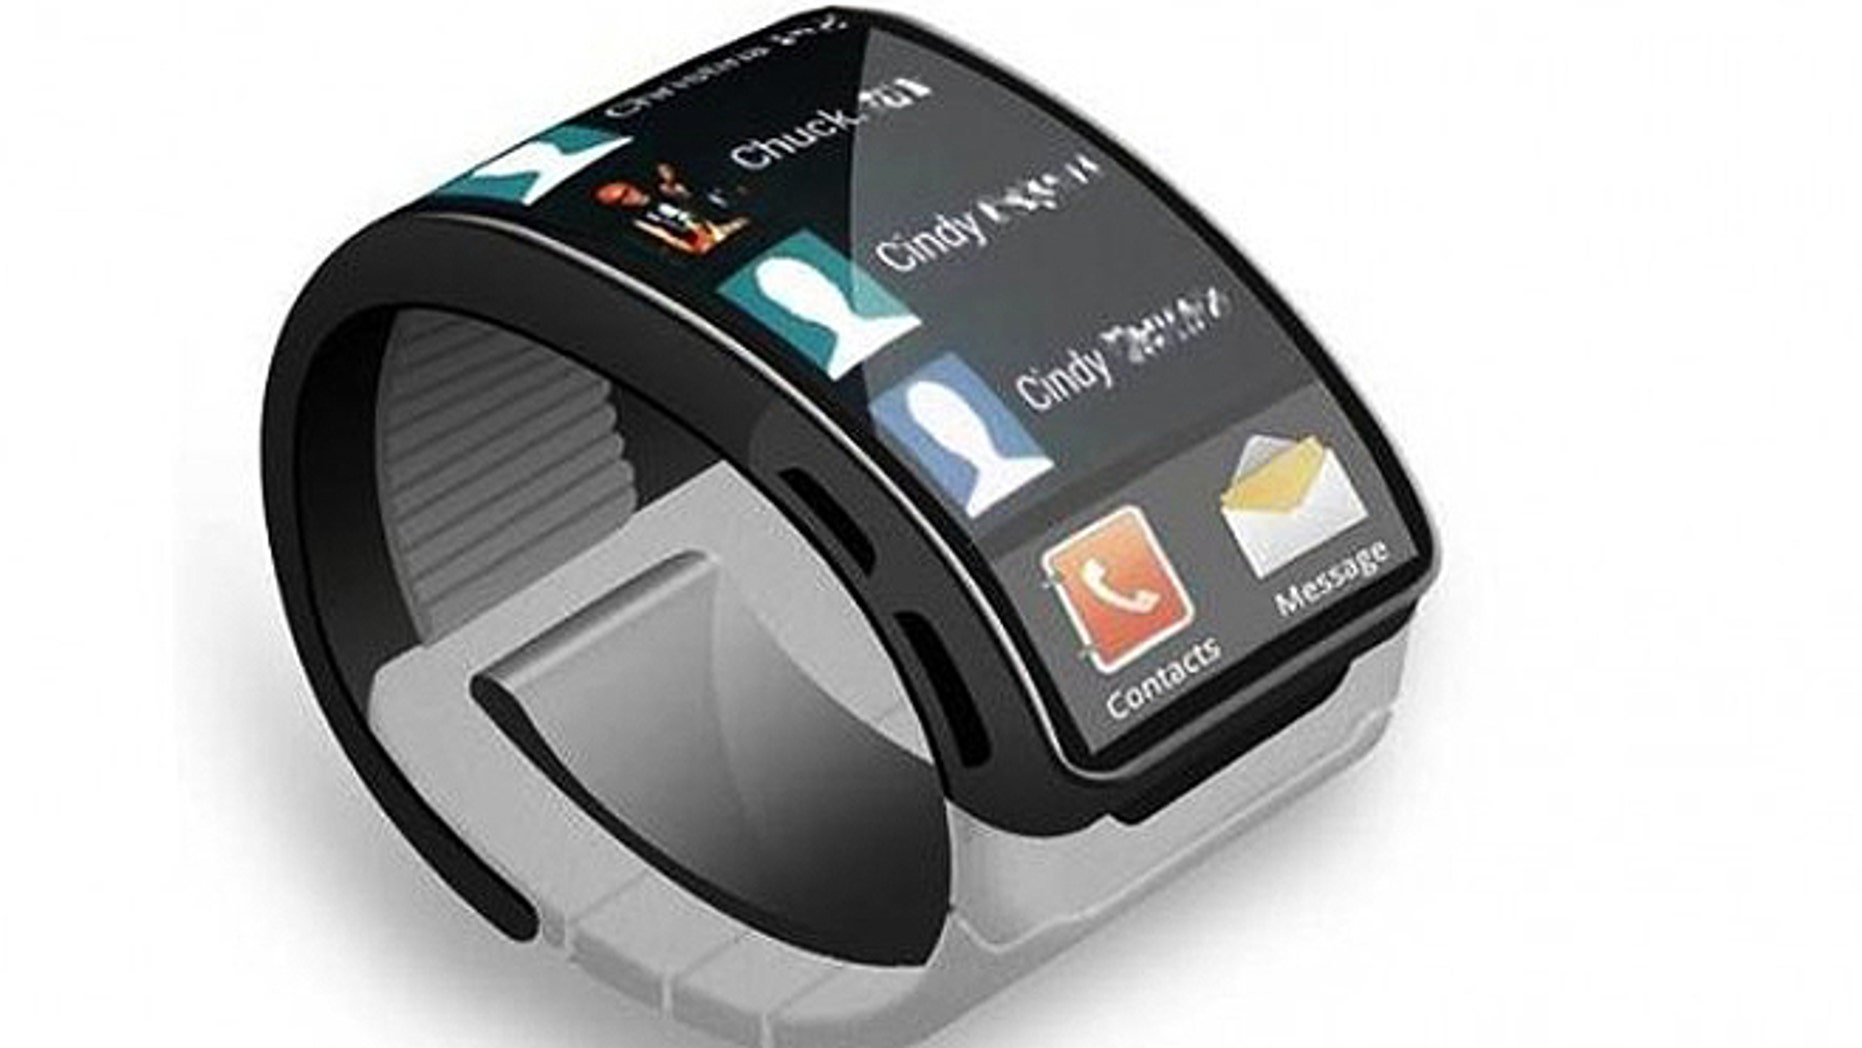 An artist's conception of what a Samsung smartwatch might look like.